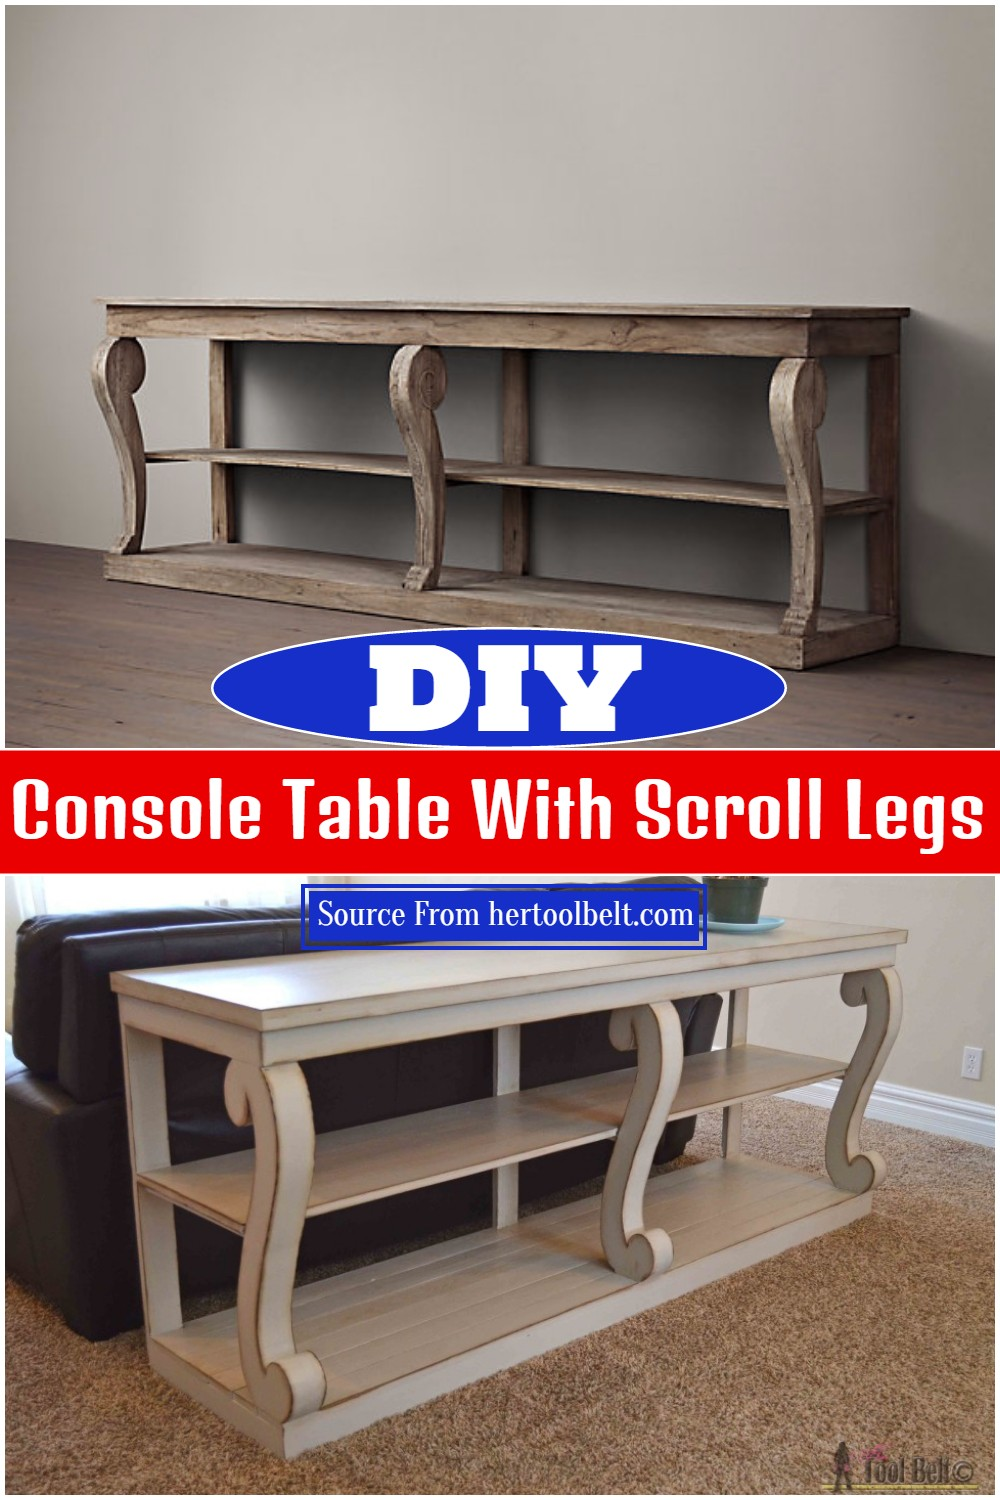 DIY Console Table With Scroll Legs